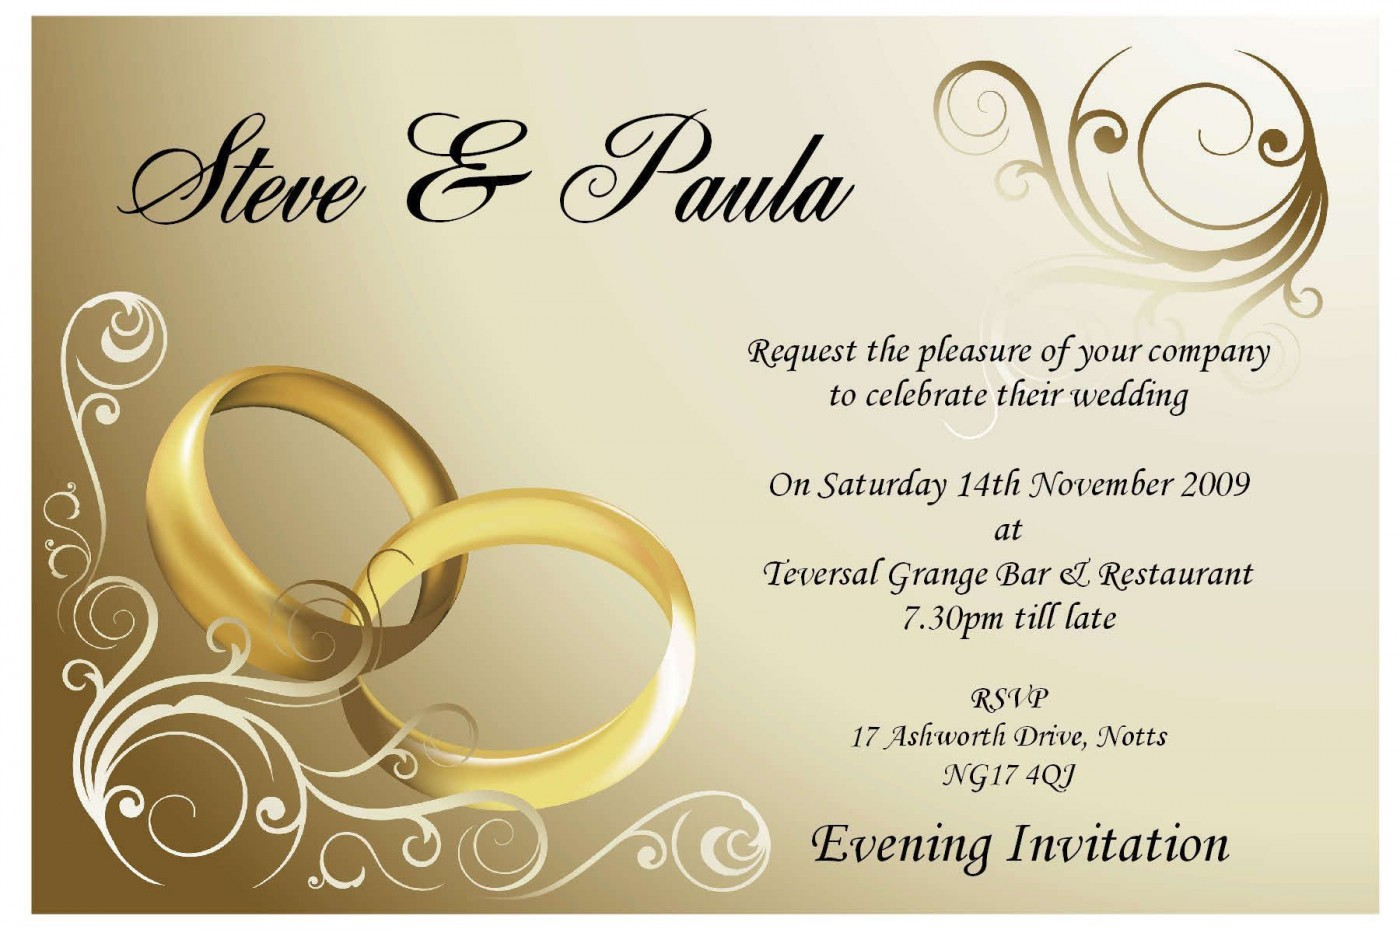 001 Remarkable Free Engagement Invitation Template Online With Photo High Definition 1400